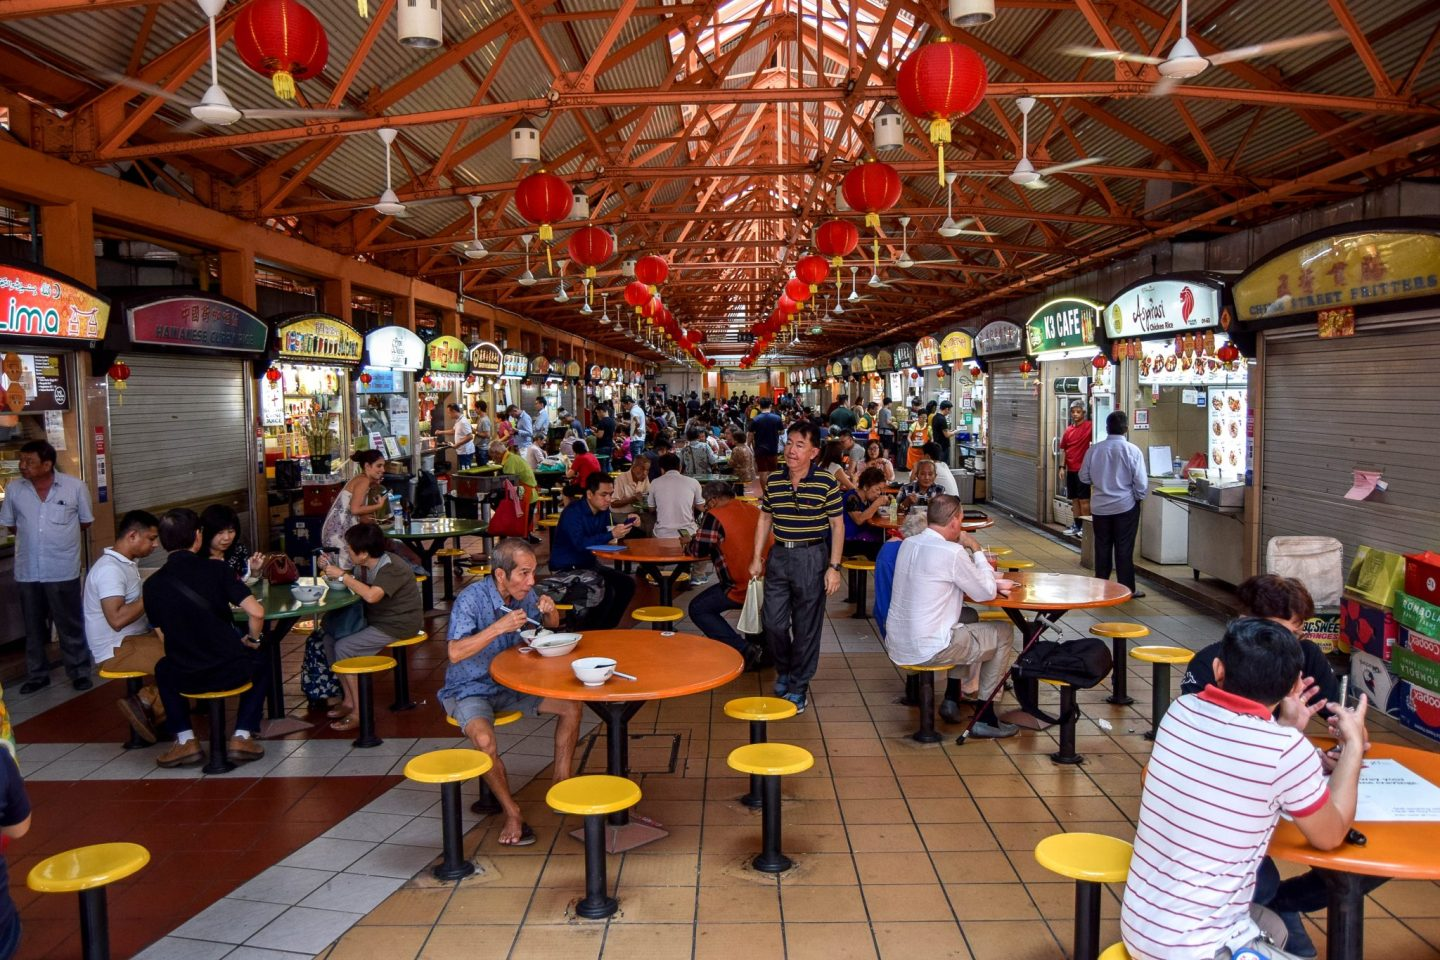 Wanderers & Warriors - Food in Chinatown Singapore – Maxwell Food Centre Singapore - Things To Do In Chinatown Singapore